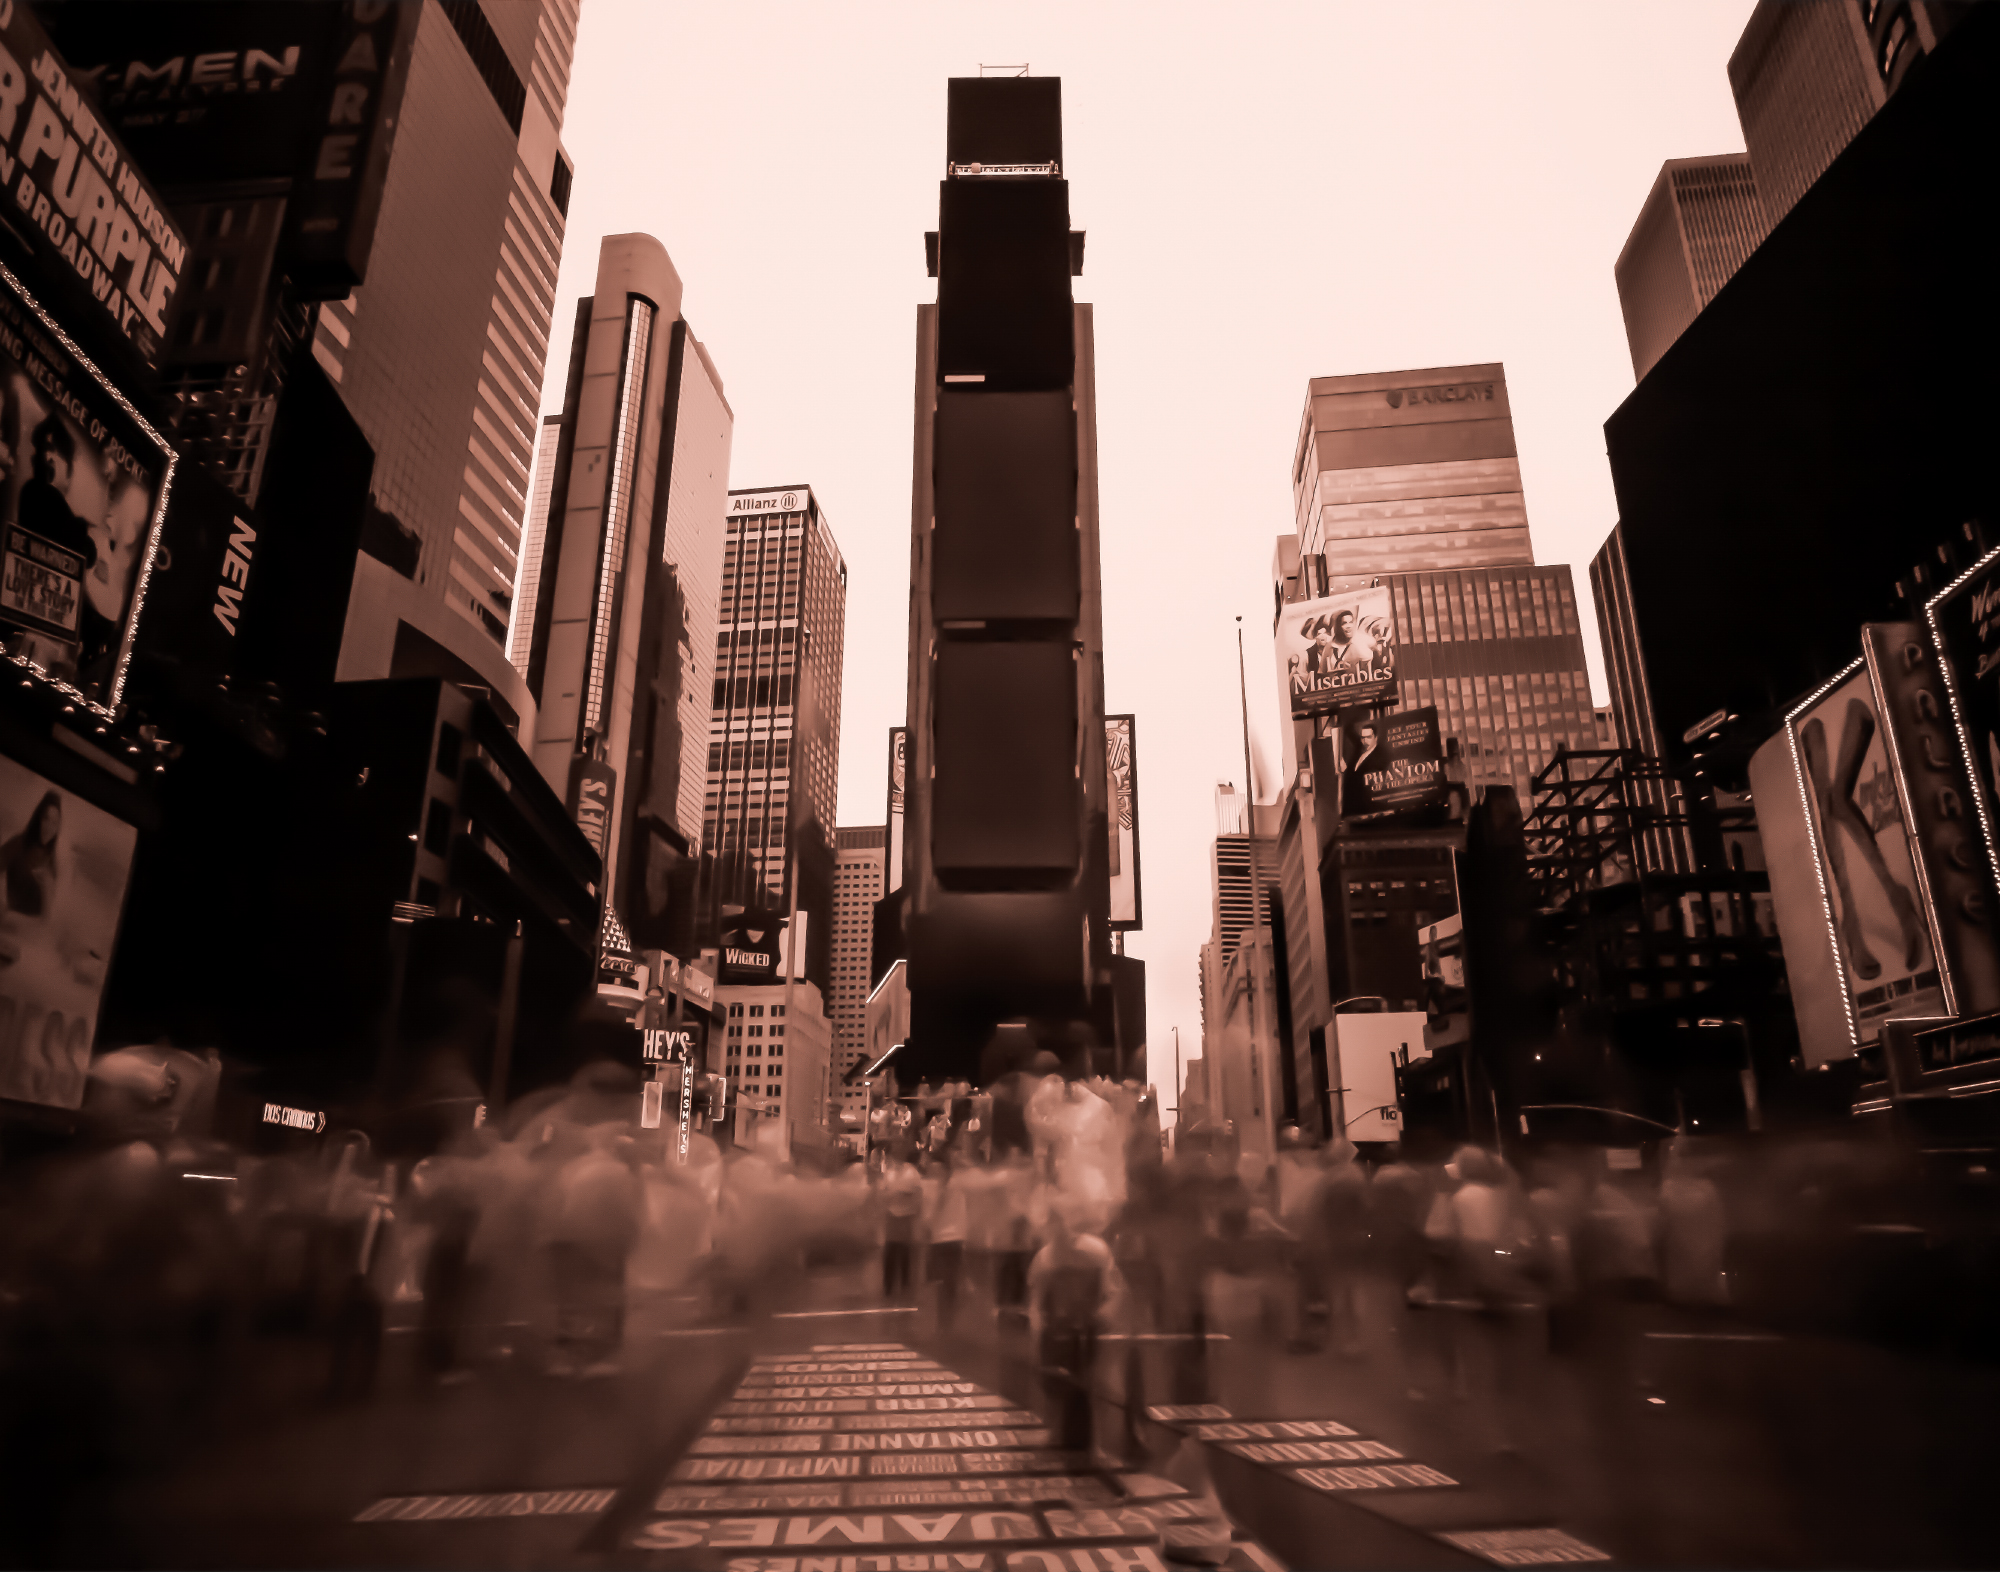 Long exposure, infra-red photograph of the famous Times Square taken in New York City, New York.